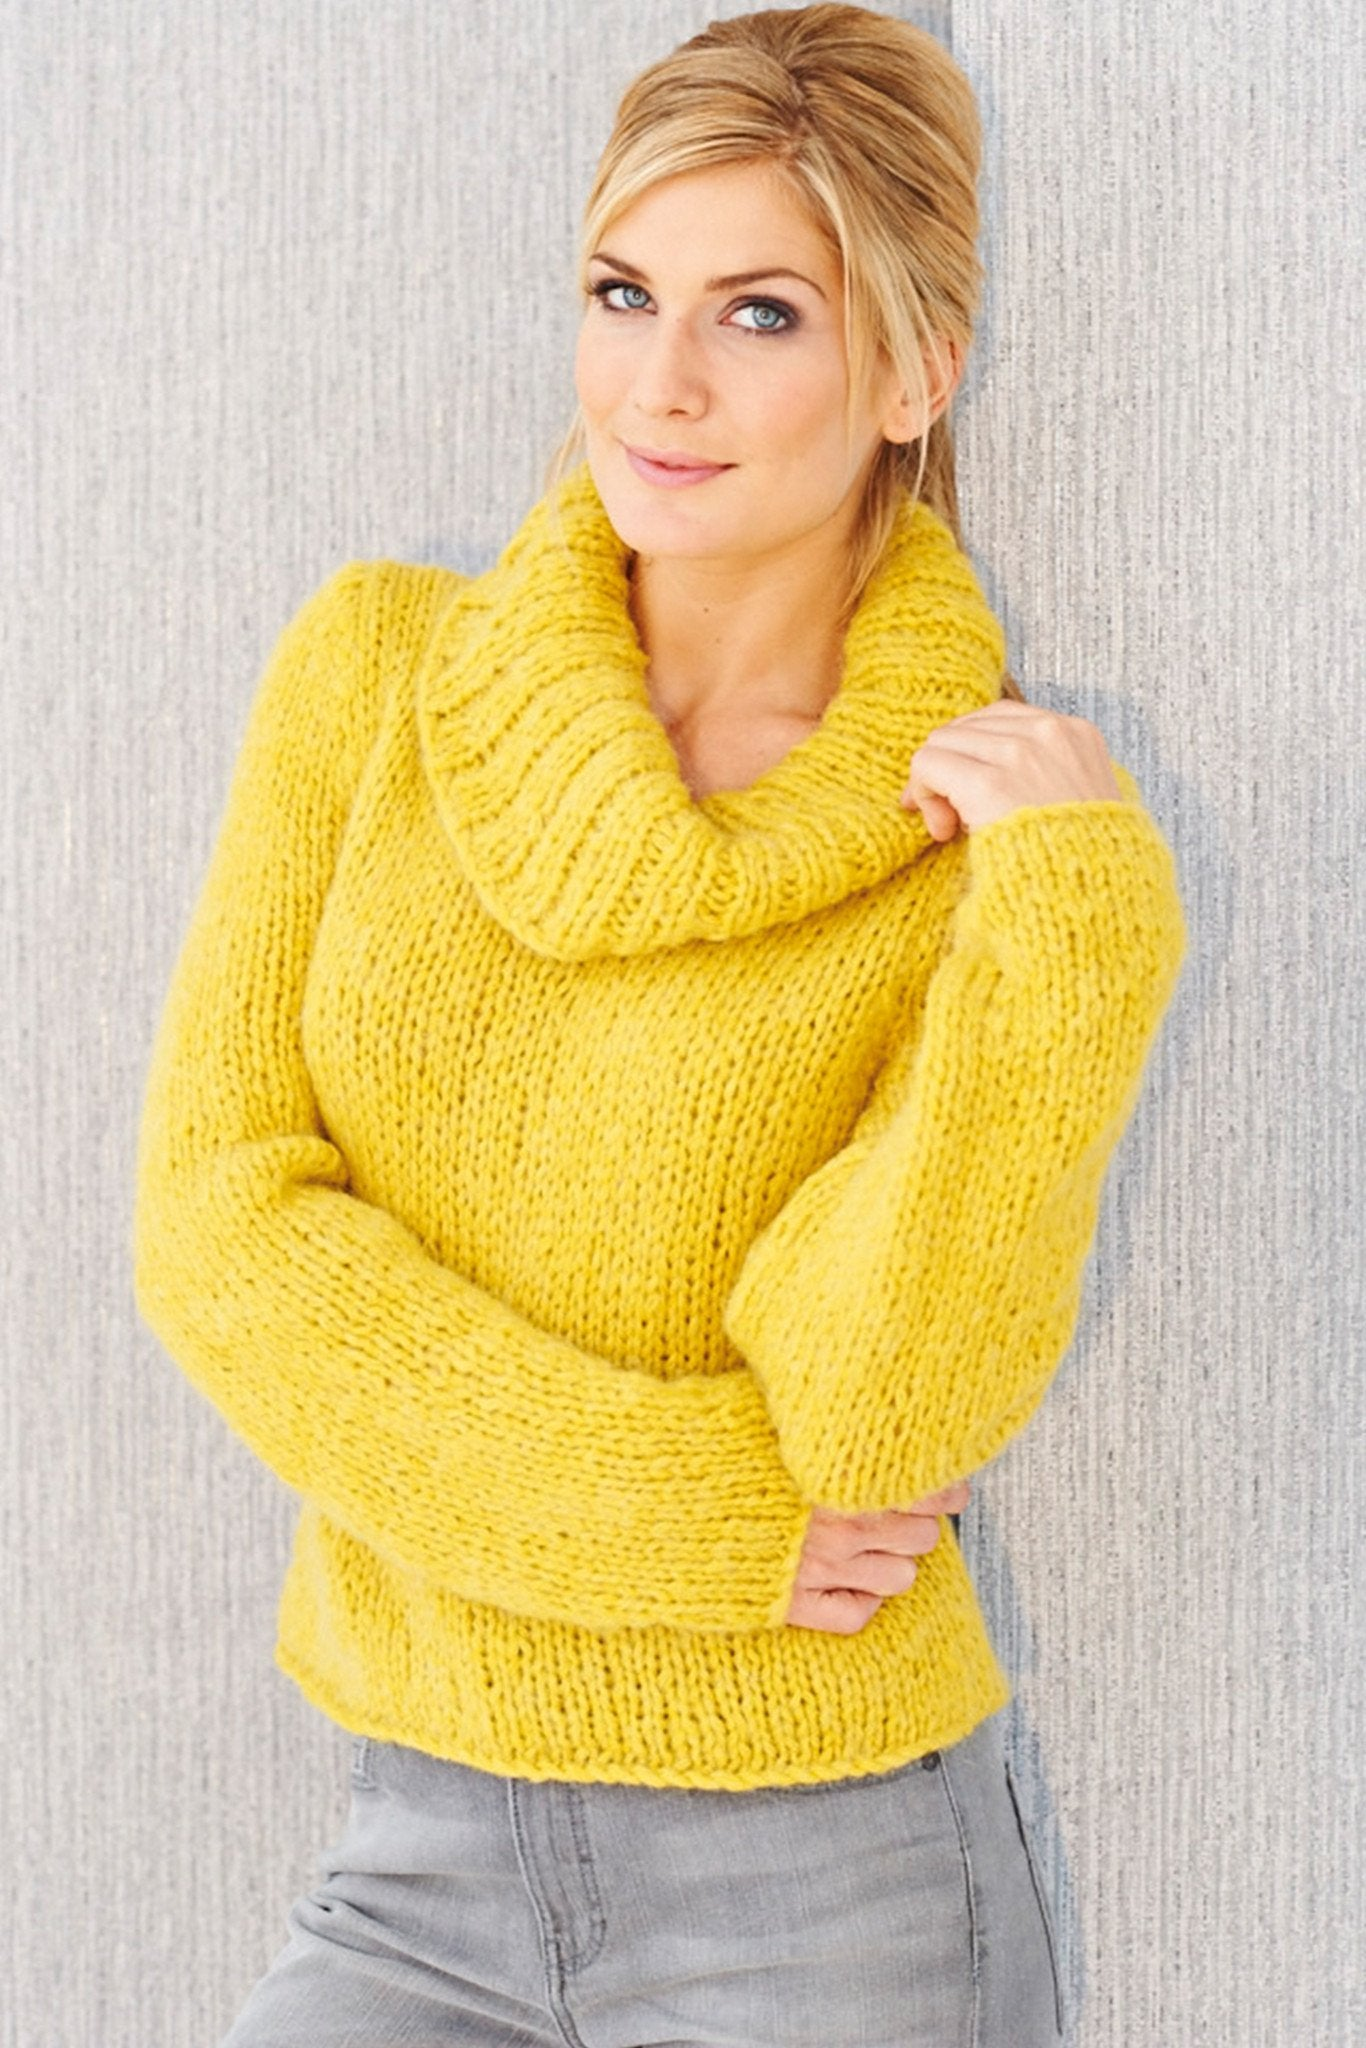 Free Knitting Pattern For Ladies Cowl Neck Sweater : Womens Chunky Cowl Neck Jumper Knitting Pattern   The Knitting Network